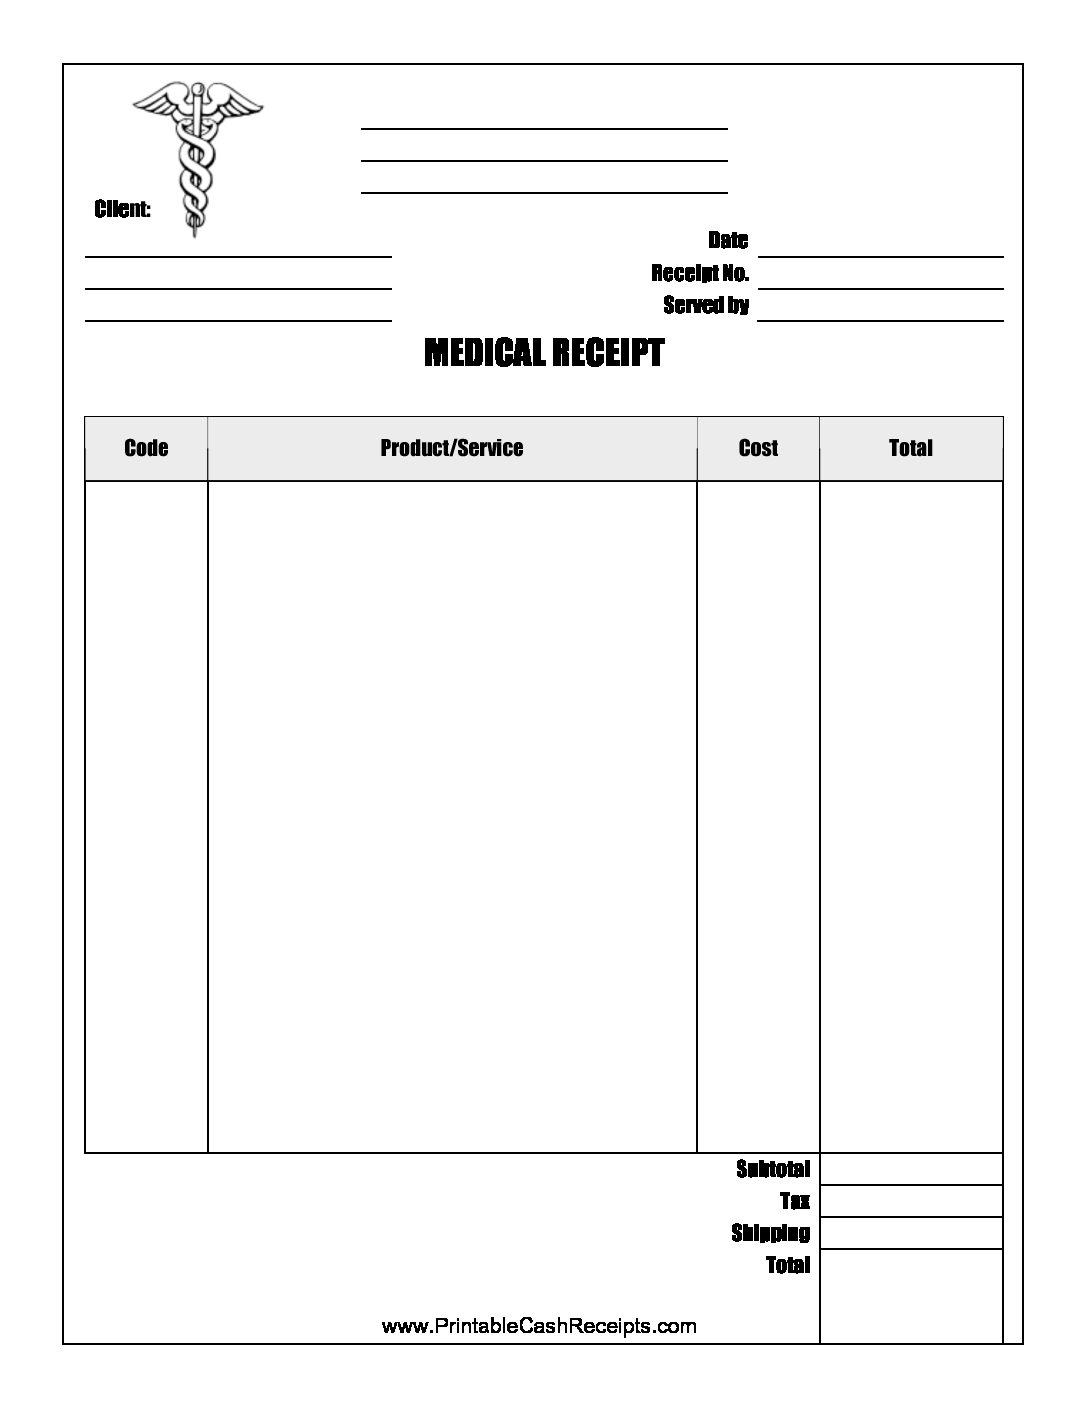 ecommerce privacy policy template - medical receipt template